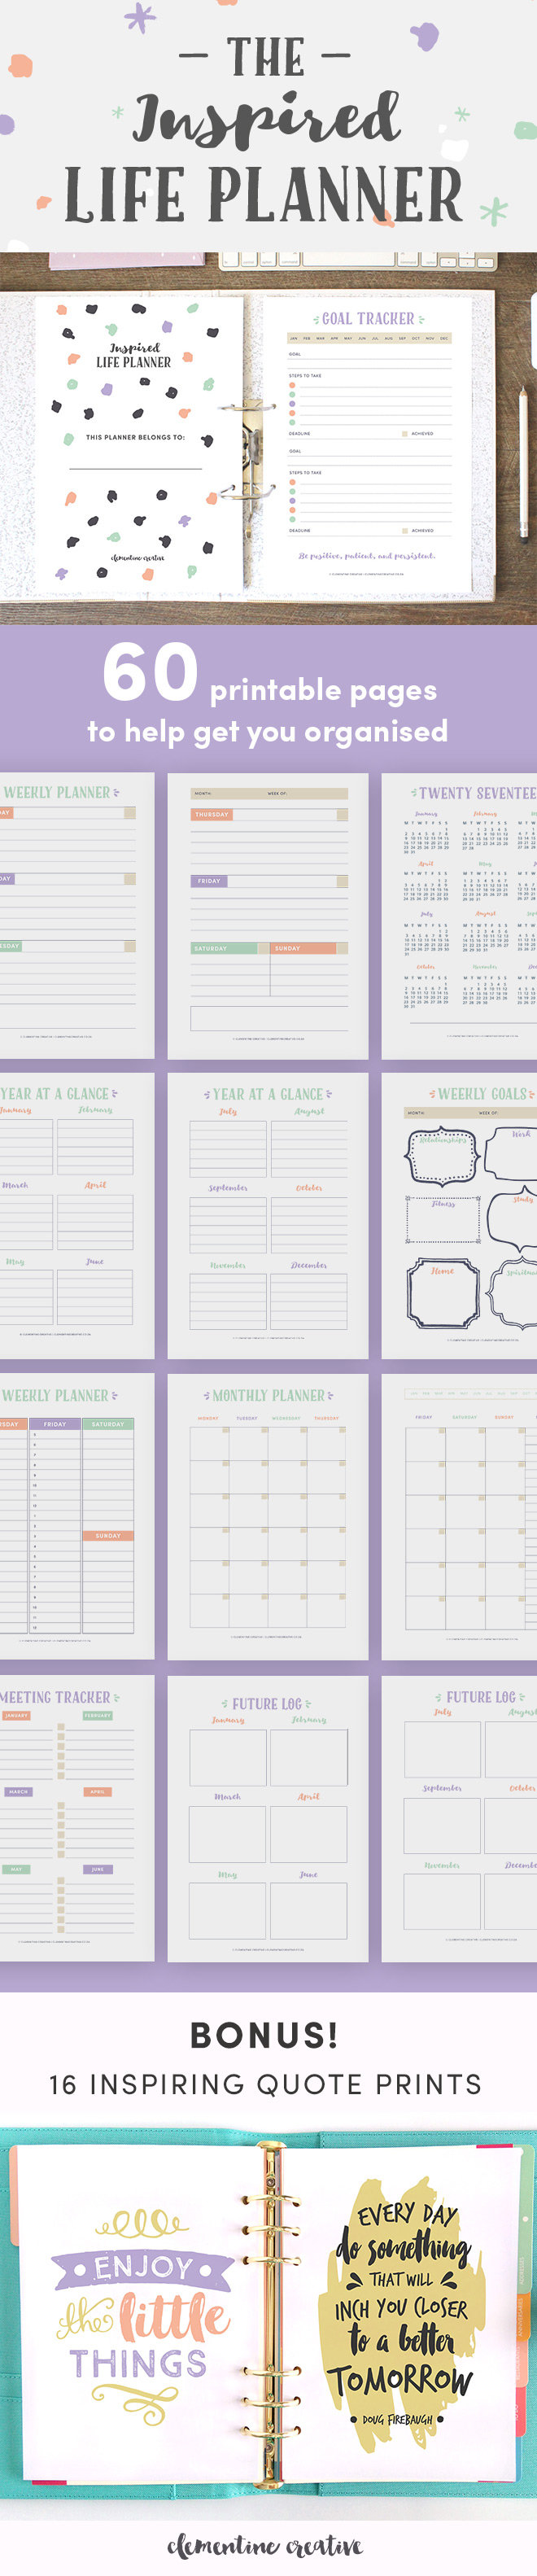 This printable life planner kit with 60 PDF pages will help you keep track of various areas in your life and as a result help you feel more organised and less stressed. Various planning pages are included: from goals, planning, and to-do lists to finance, health and fitness trackers. You can choose one of the following sizes: A4 / A5 / US Letter. You'll also get 16 inspiring quotes with your purchase! Click here to see more.